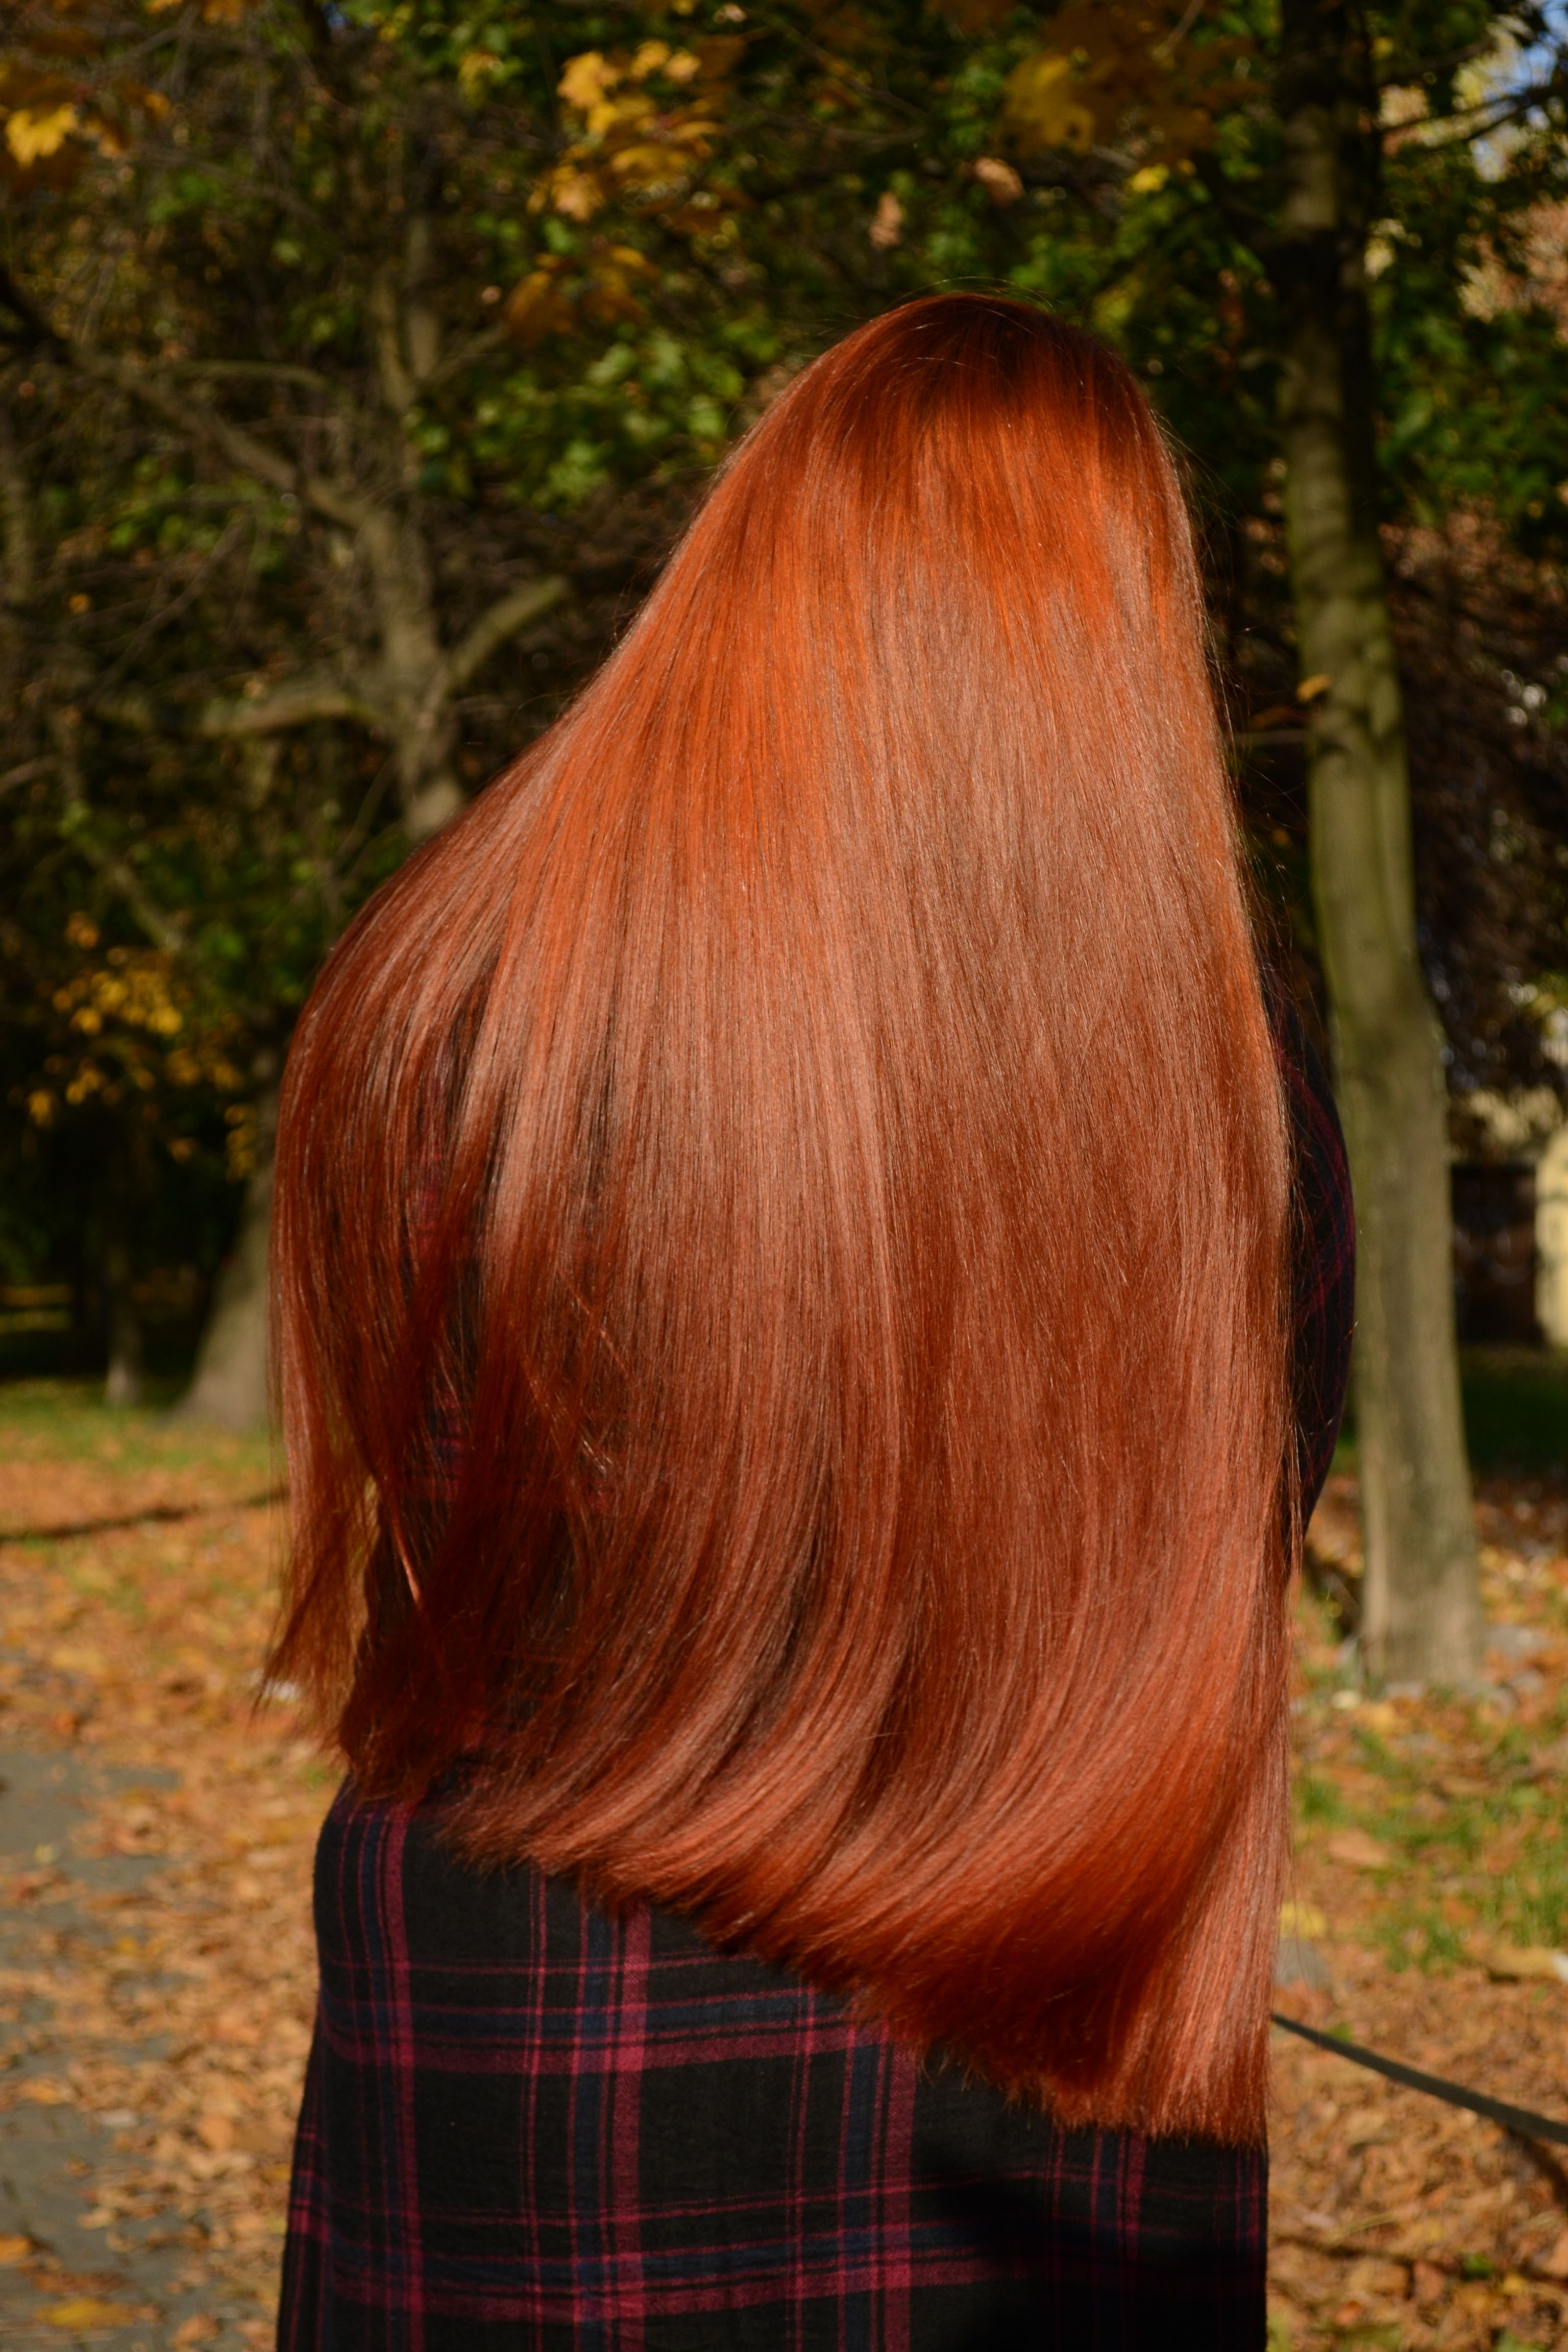 Pin by Mina Galan on Hair and Colour | Pinterest | Red hair, Hair ...